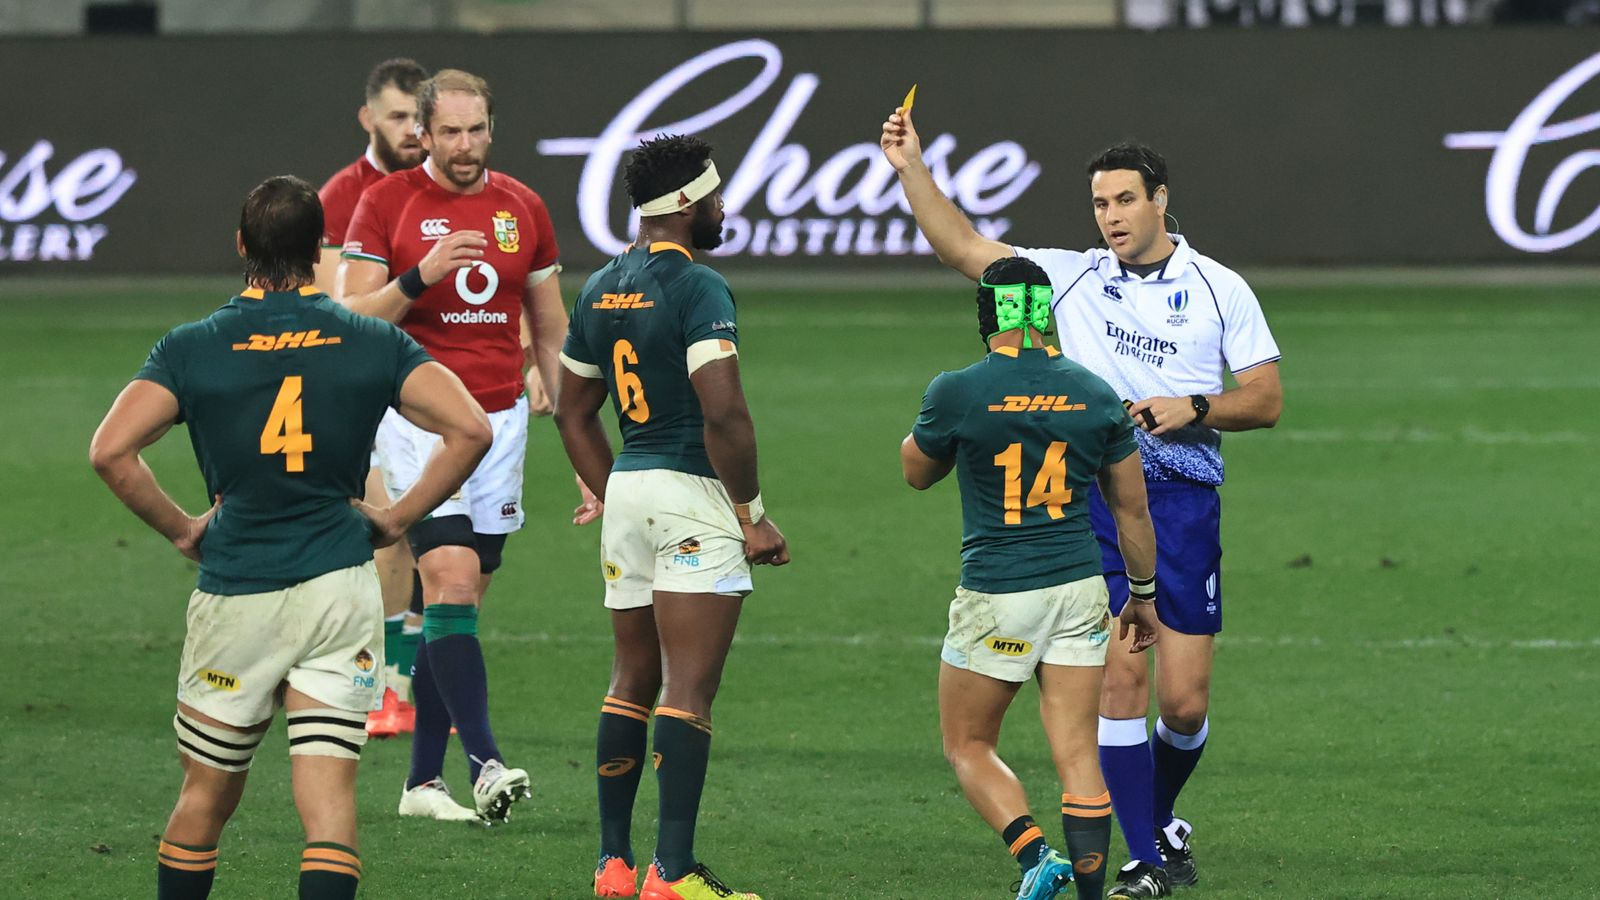 Cheslin Kolbe: Nigel Owens says winger lucky not to see red as Springboks level series with Lions